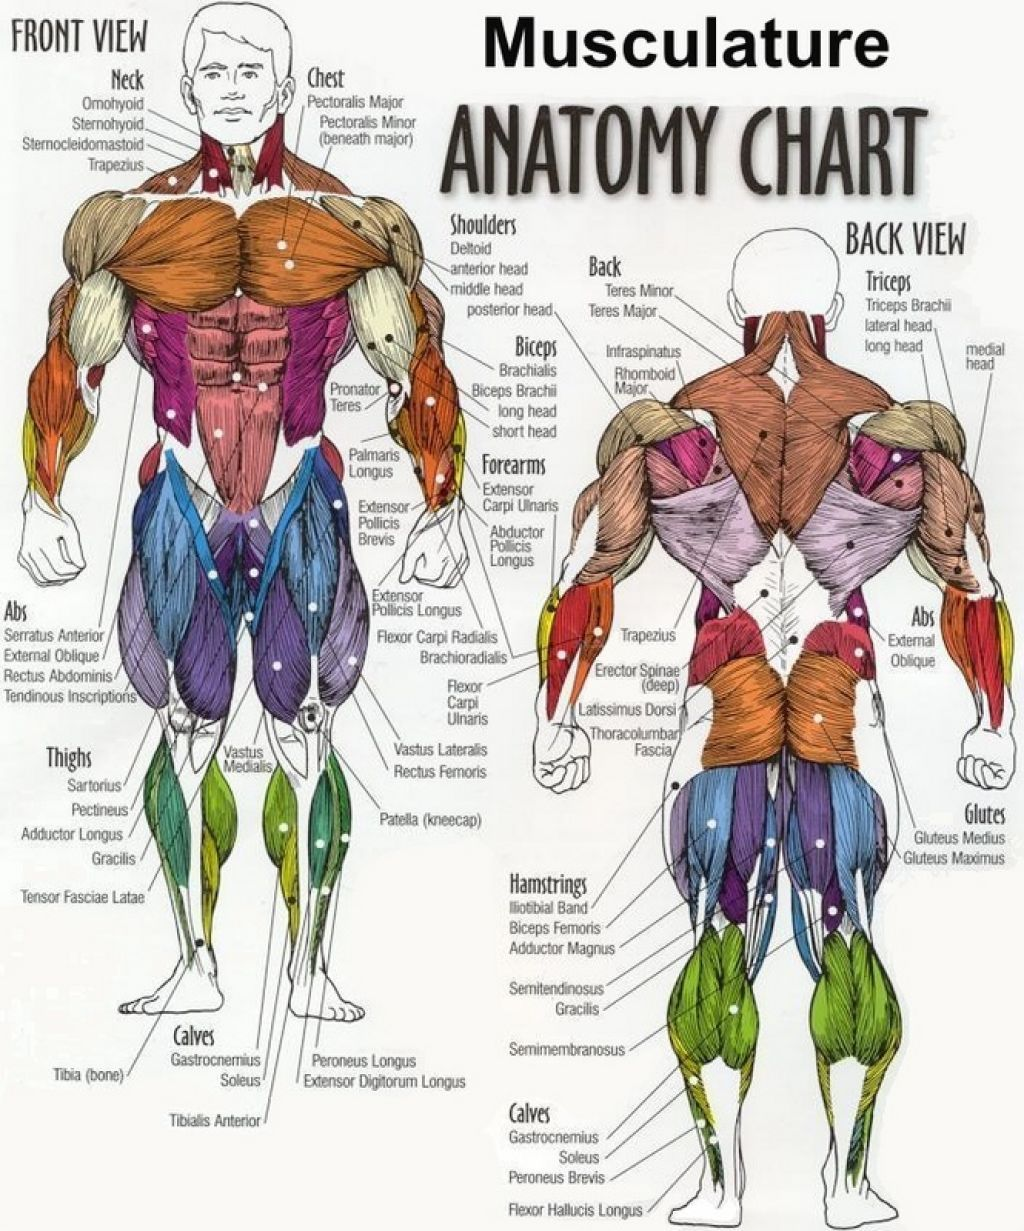 muscle upper arm color diagram - Google Search | muscle_whole body ...